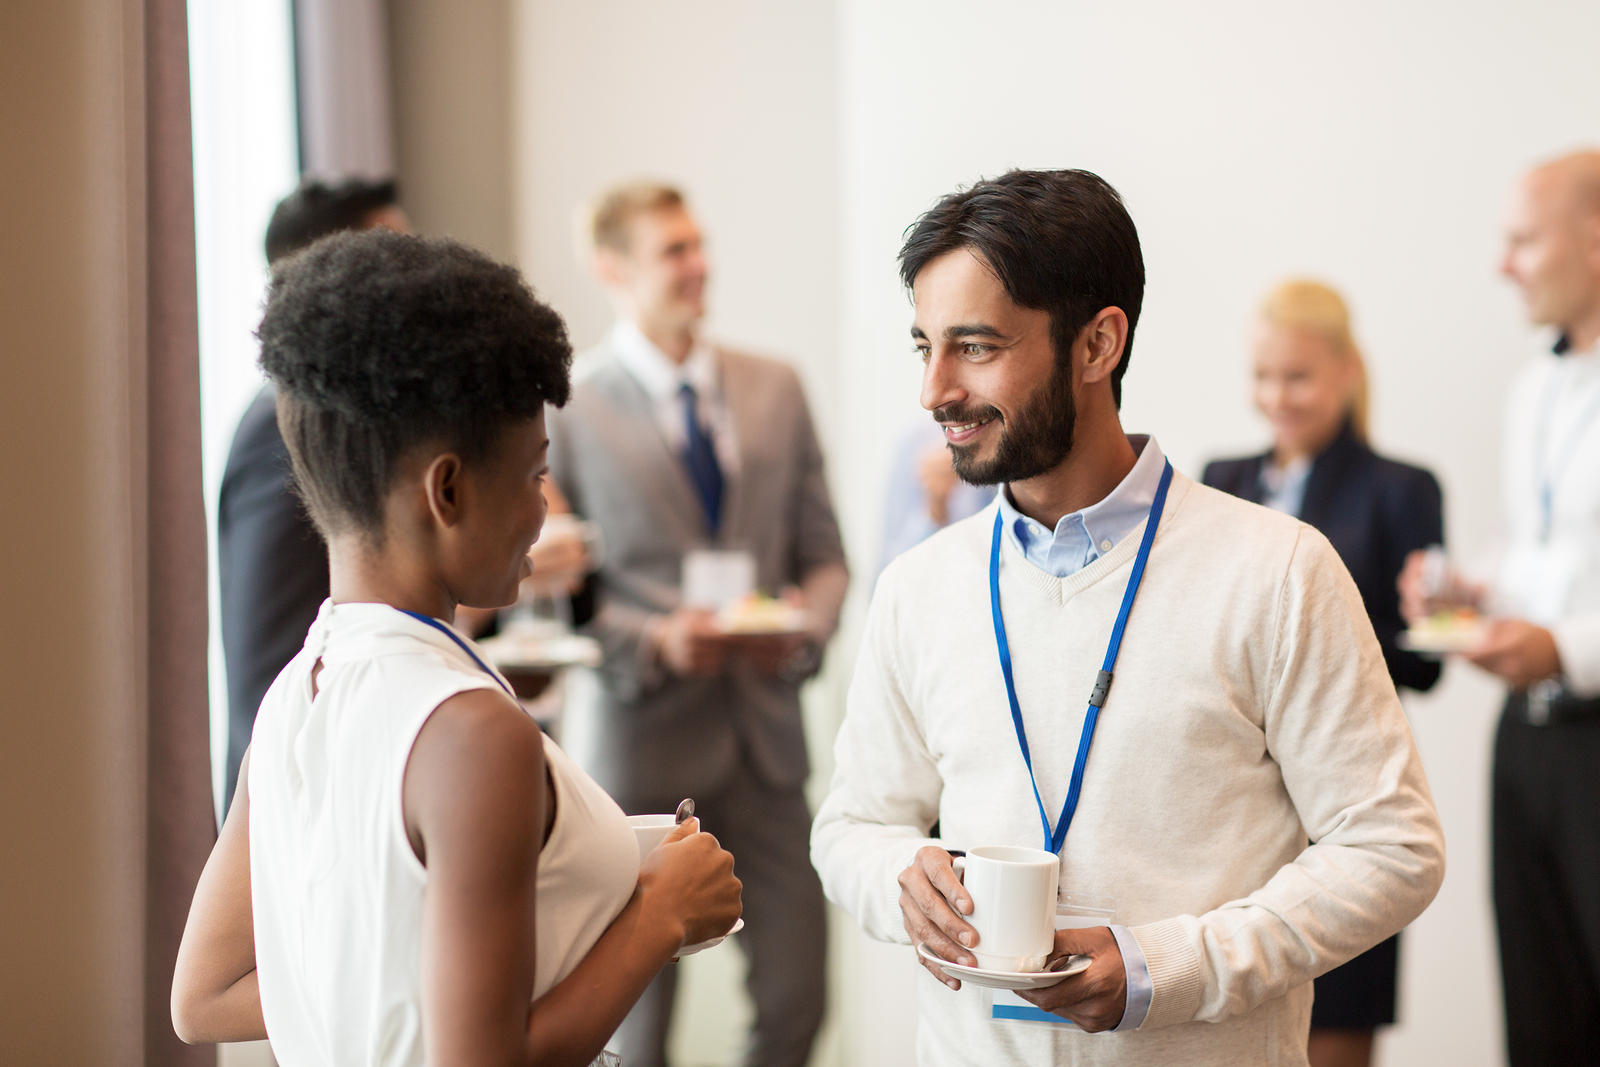 10-tips-to-sharpen-your-networking-skills-meld